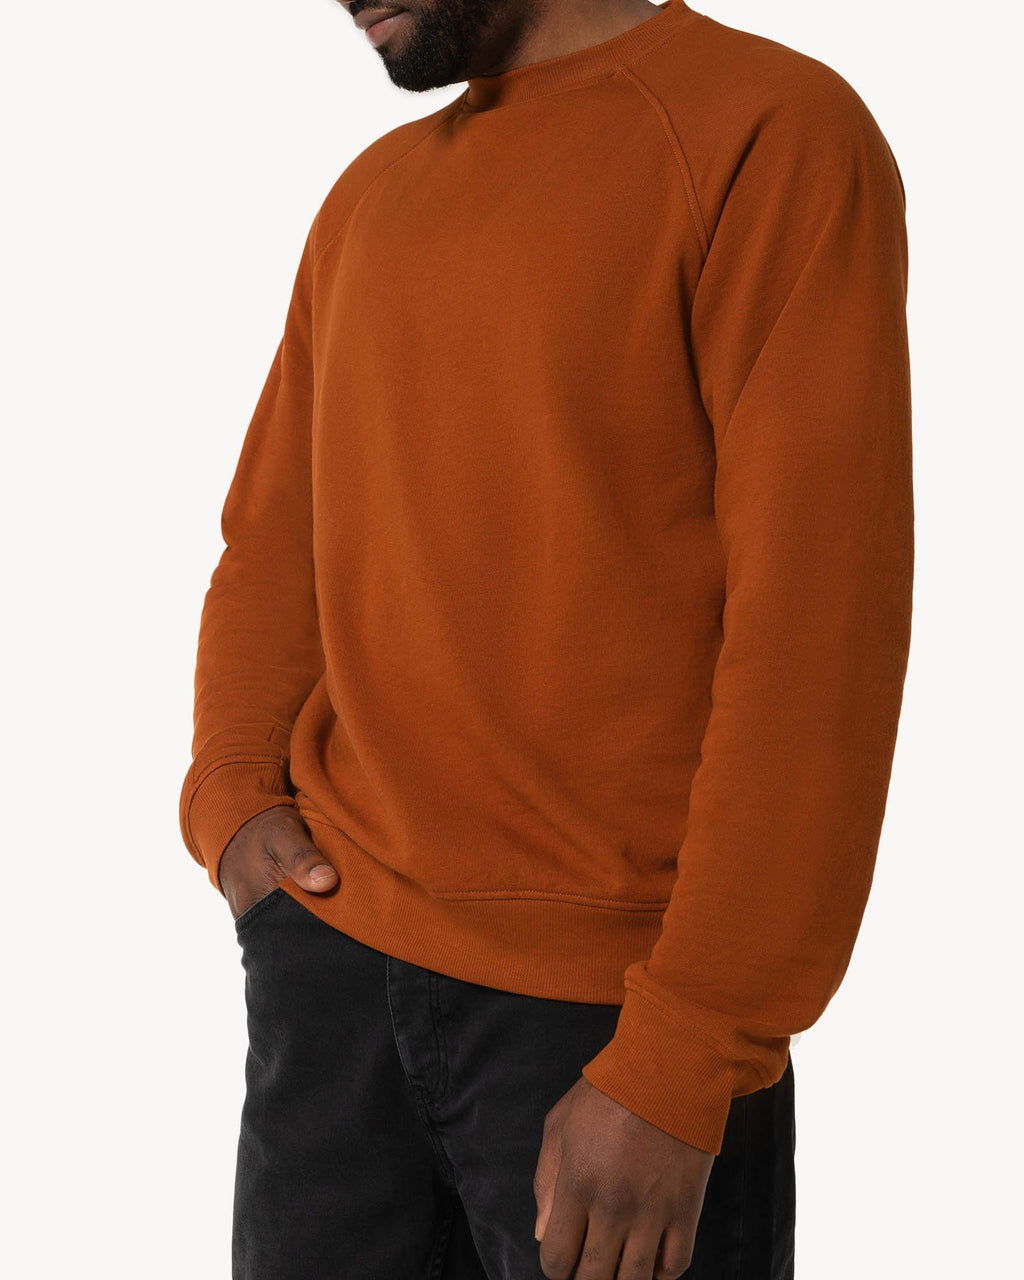 variant_2 | EN Orange Sweatshirt Men | DE Sweatshirt Orange Herren